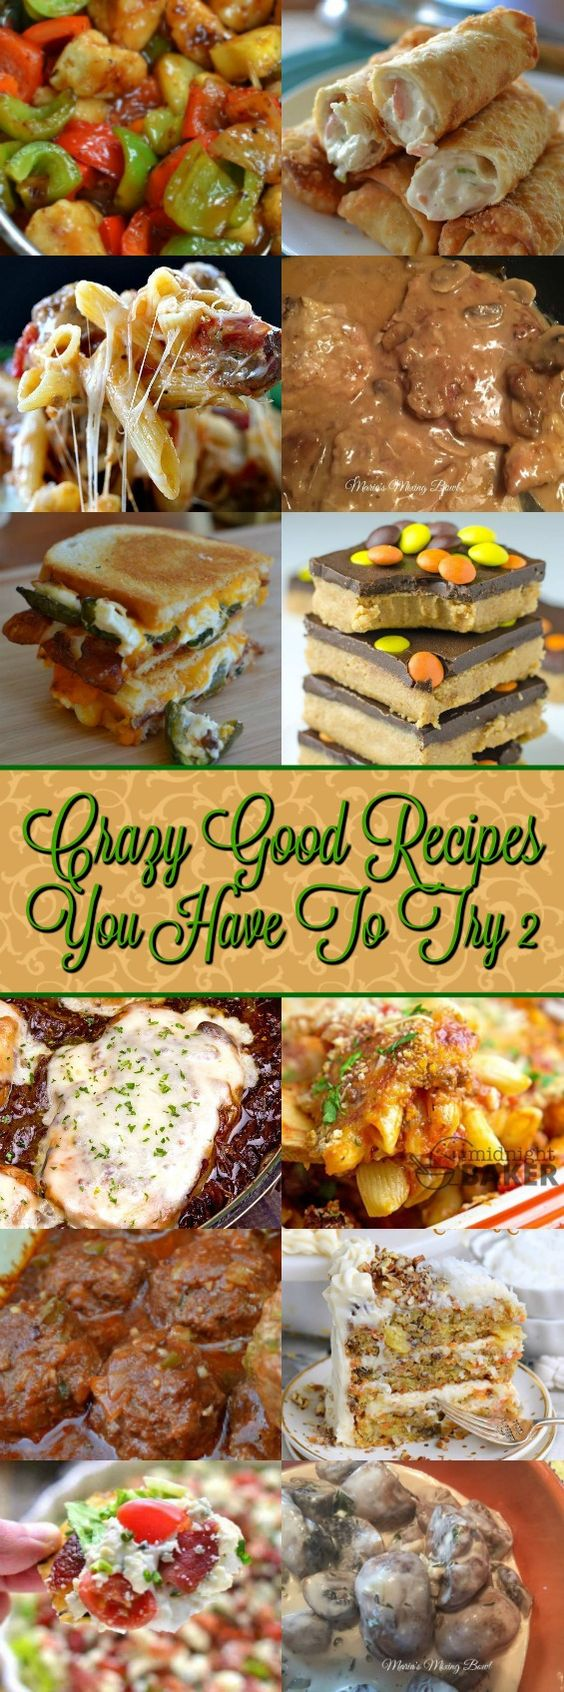 Crazy Good Recipe You Have To Try 2 more  amazing recipes from the best bloggers sharing their best recipes with you! They are all so delicious. YUM!